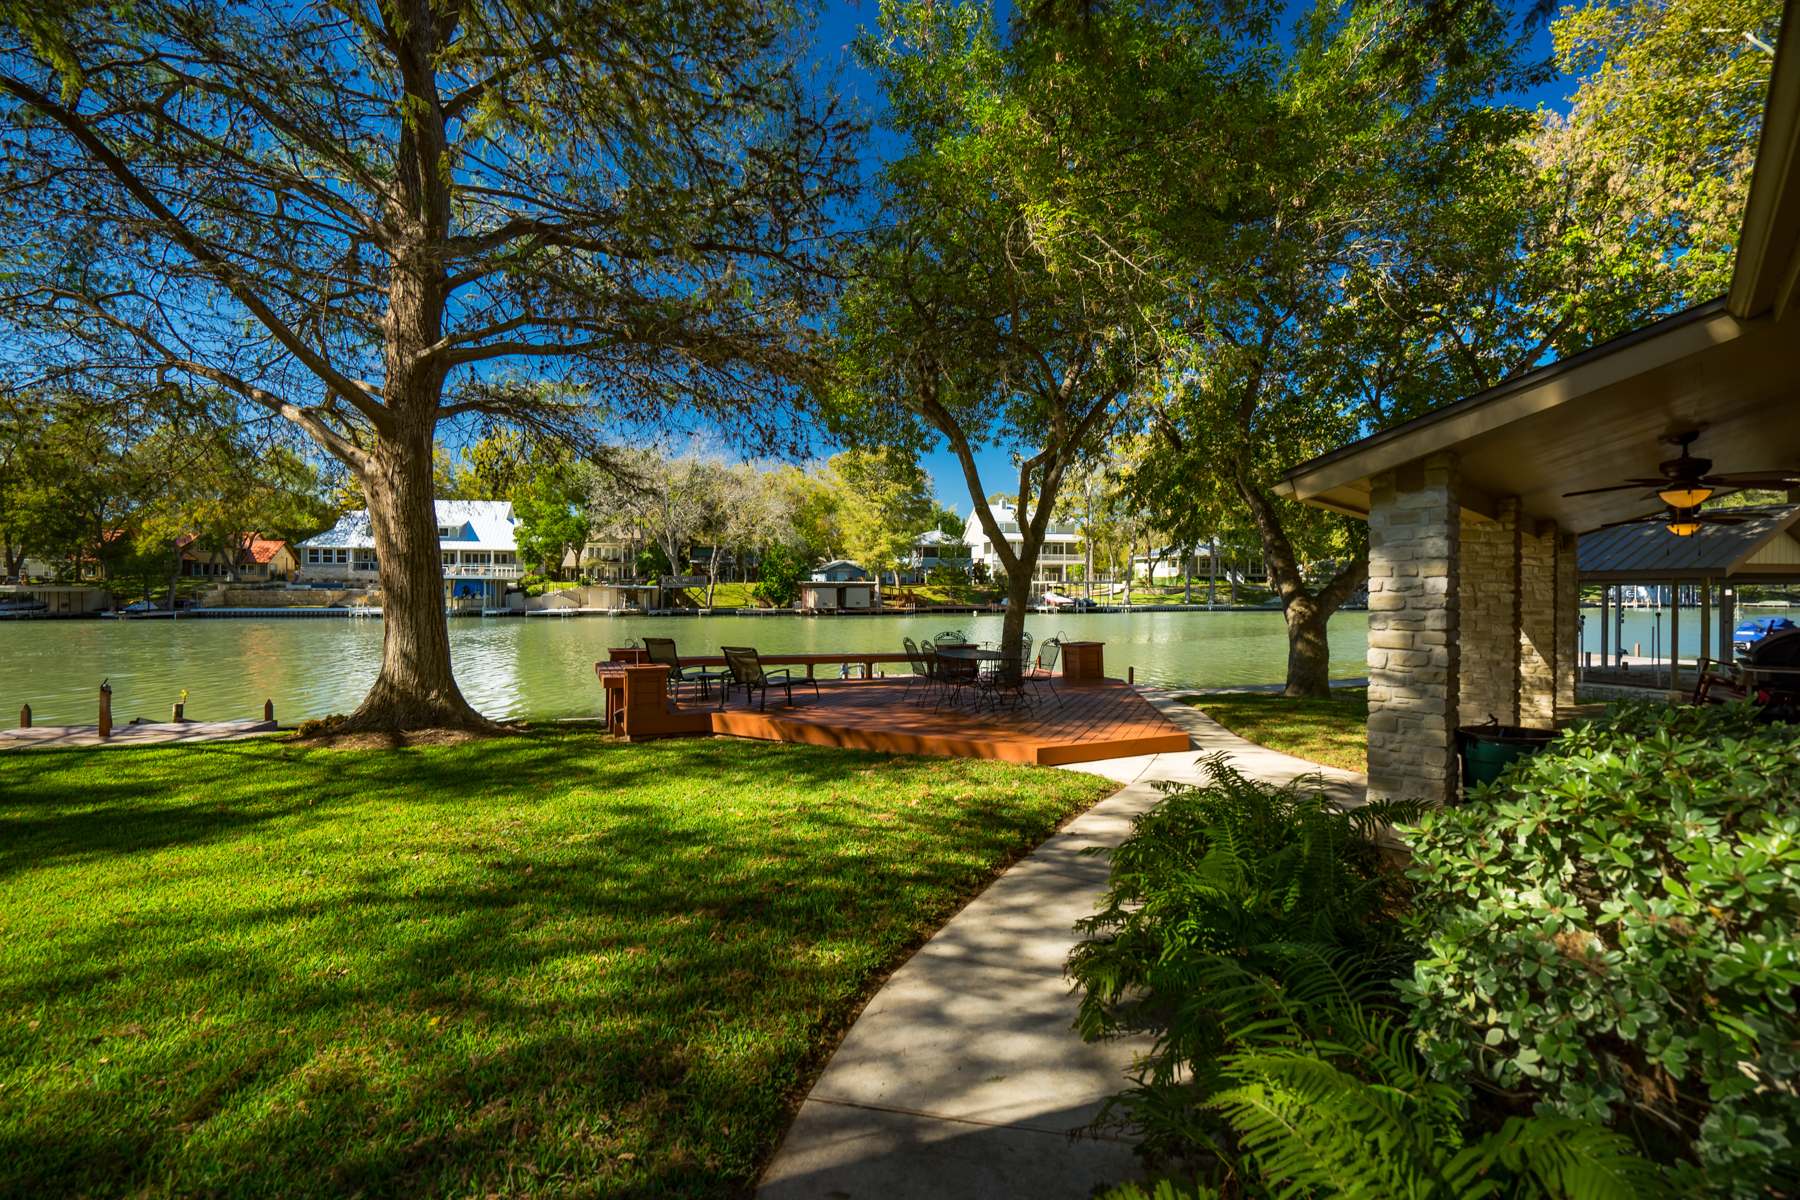 Single Family Home for Sale at Gorgeous Waterfront Property on Lake McQueeney 484 Laguna Vista Seguin, Texas 78155 United States